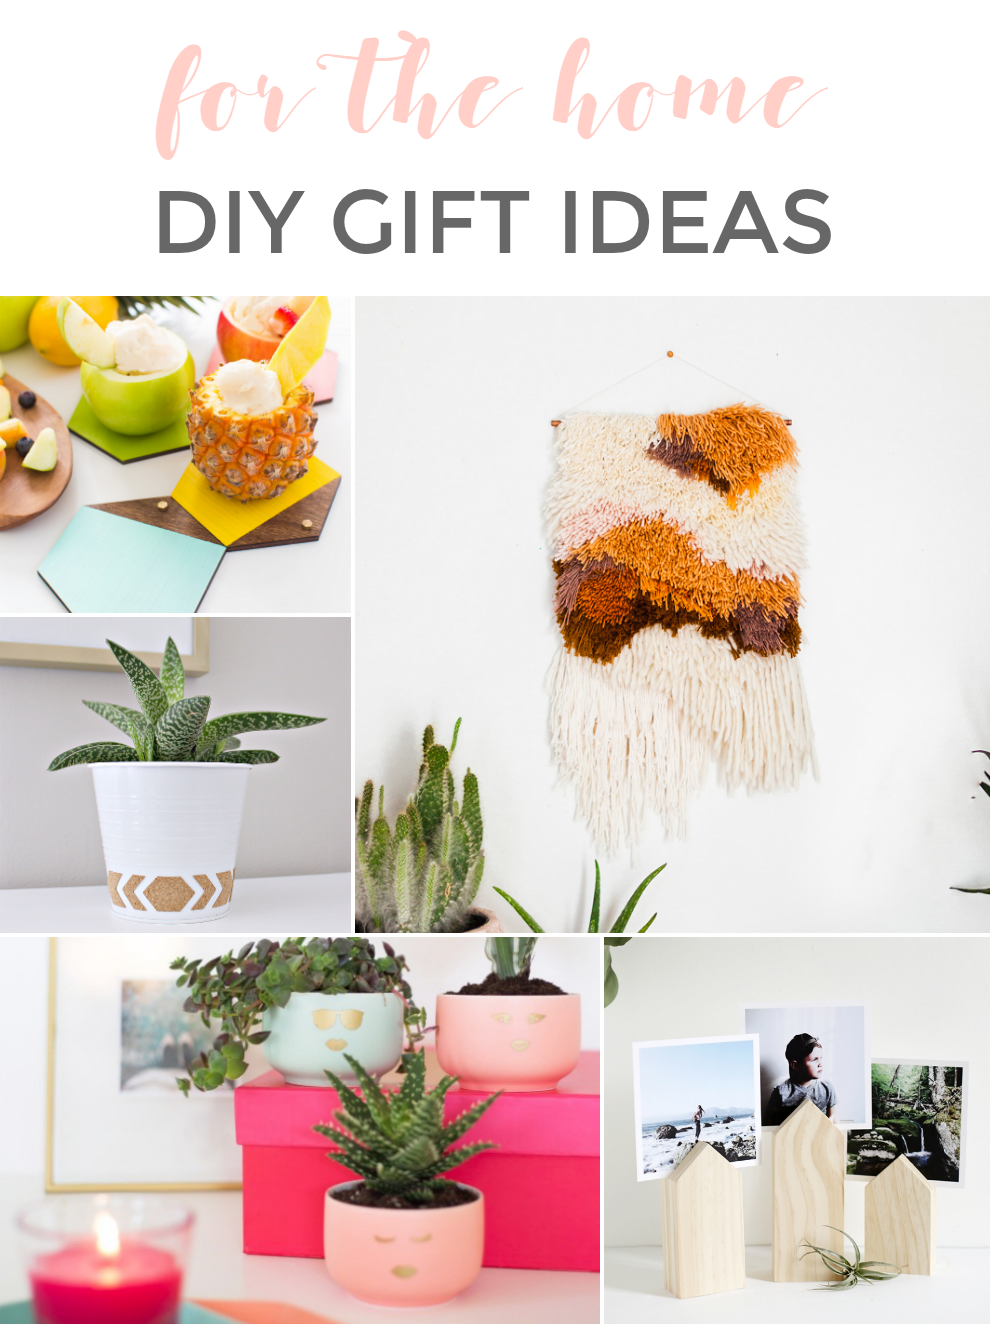 DIY HOLIDAY GIFT IDEAS: FOR THE HOME | DIY | Pinterest | Diy holiday ...